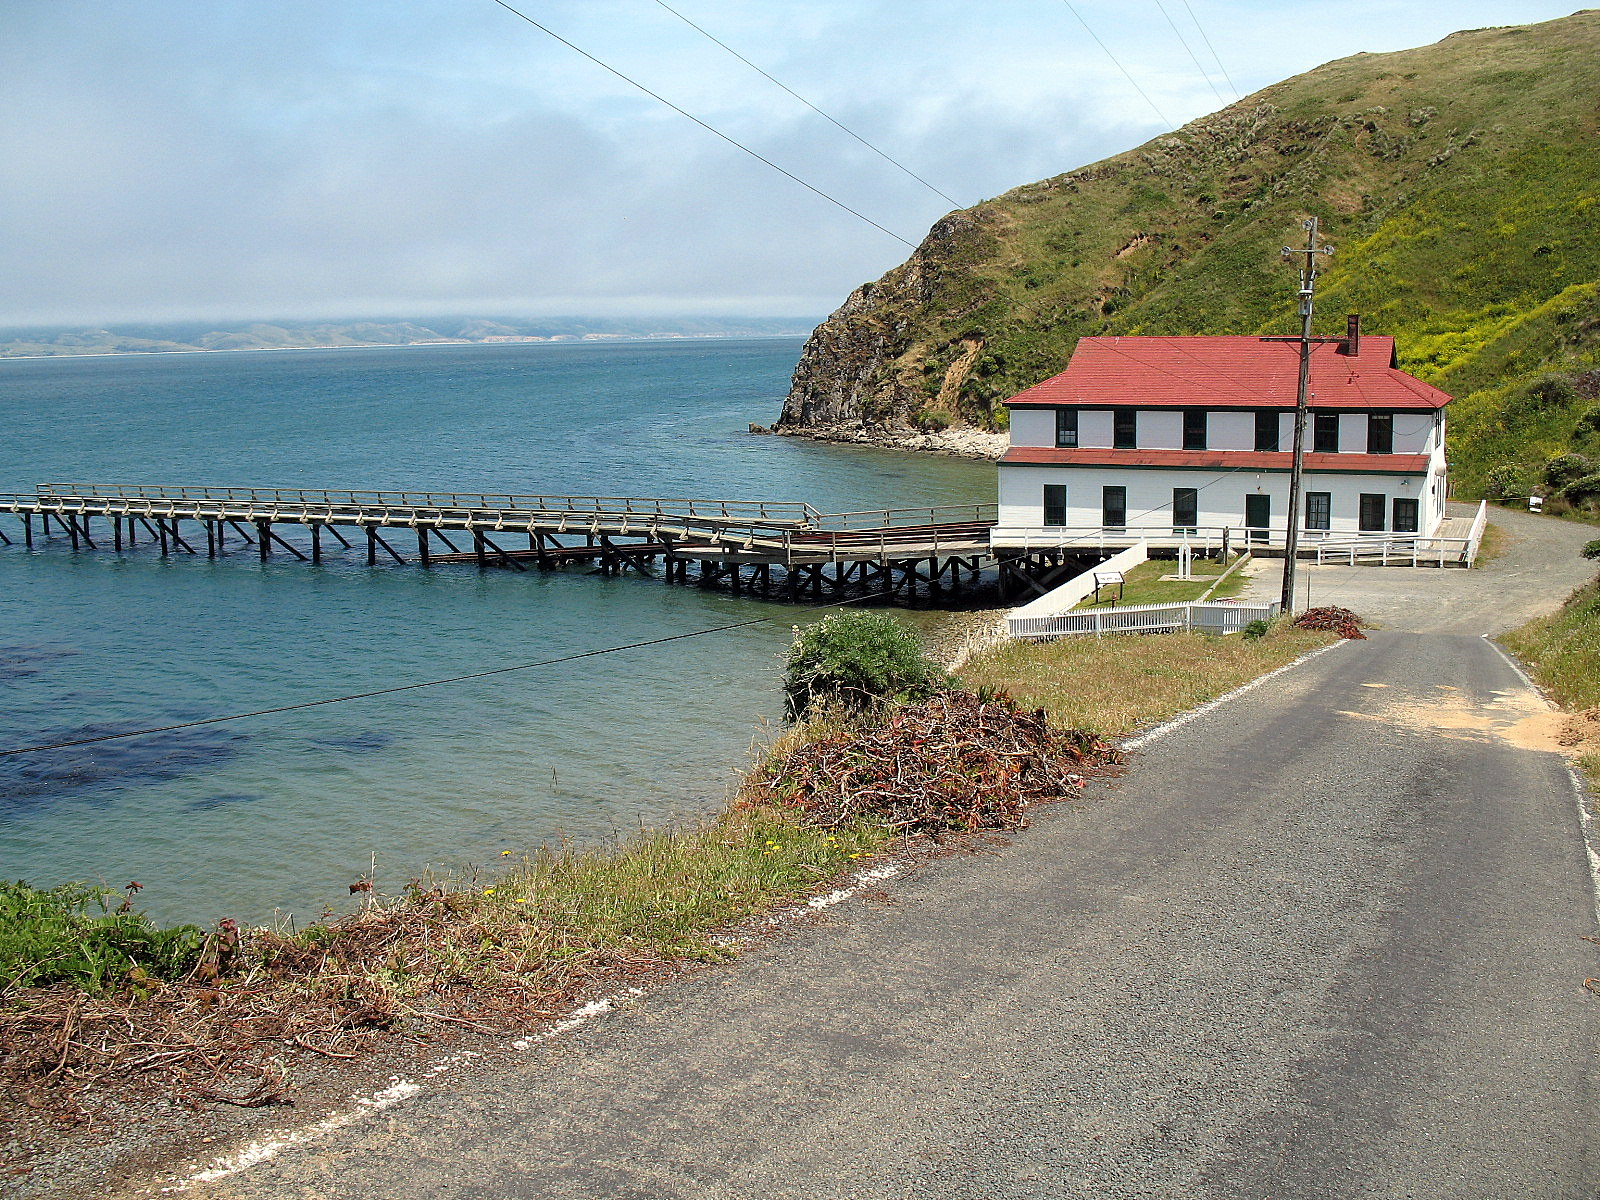 point reyes station Browse 603 point reyes national seashore hotels & save money with our expedia price guarantee read user reviews of over 321,000 hotels worldwide no expedia.